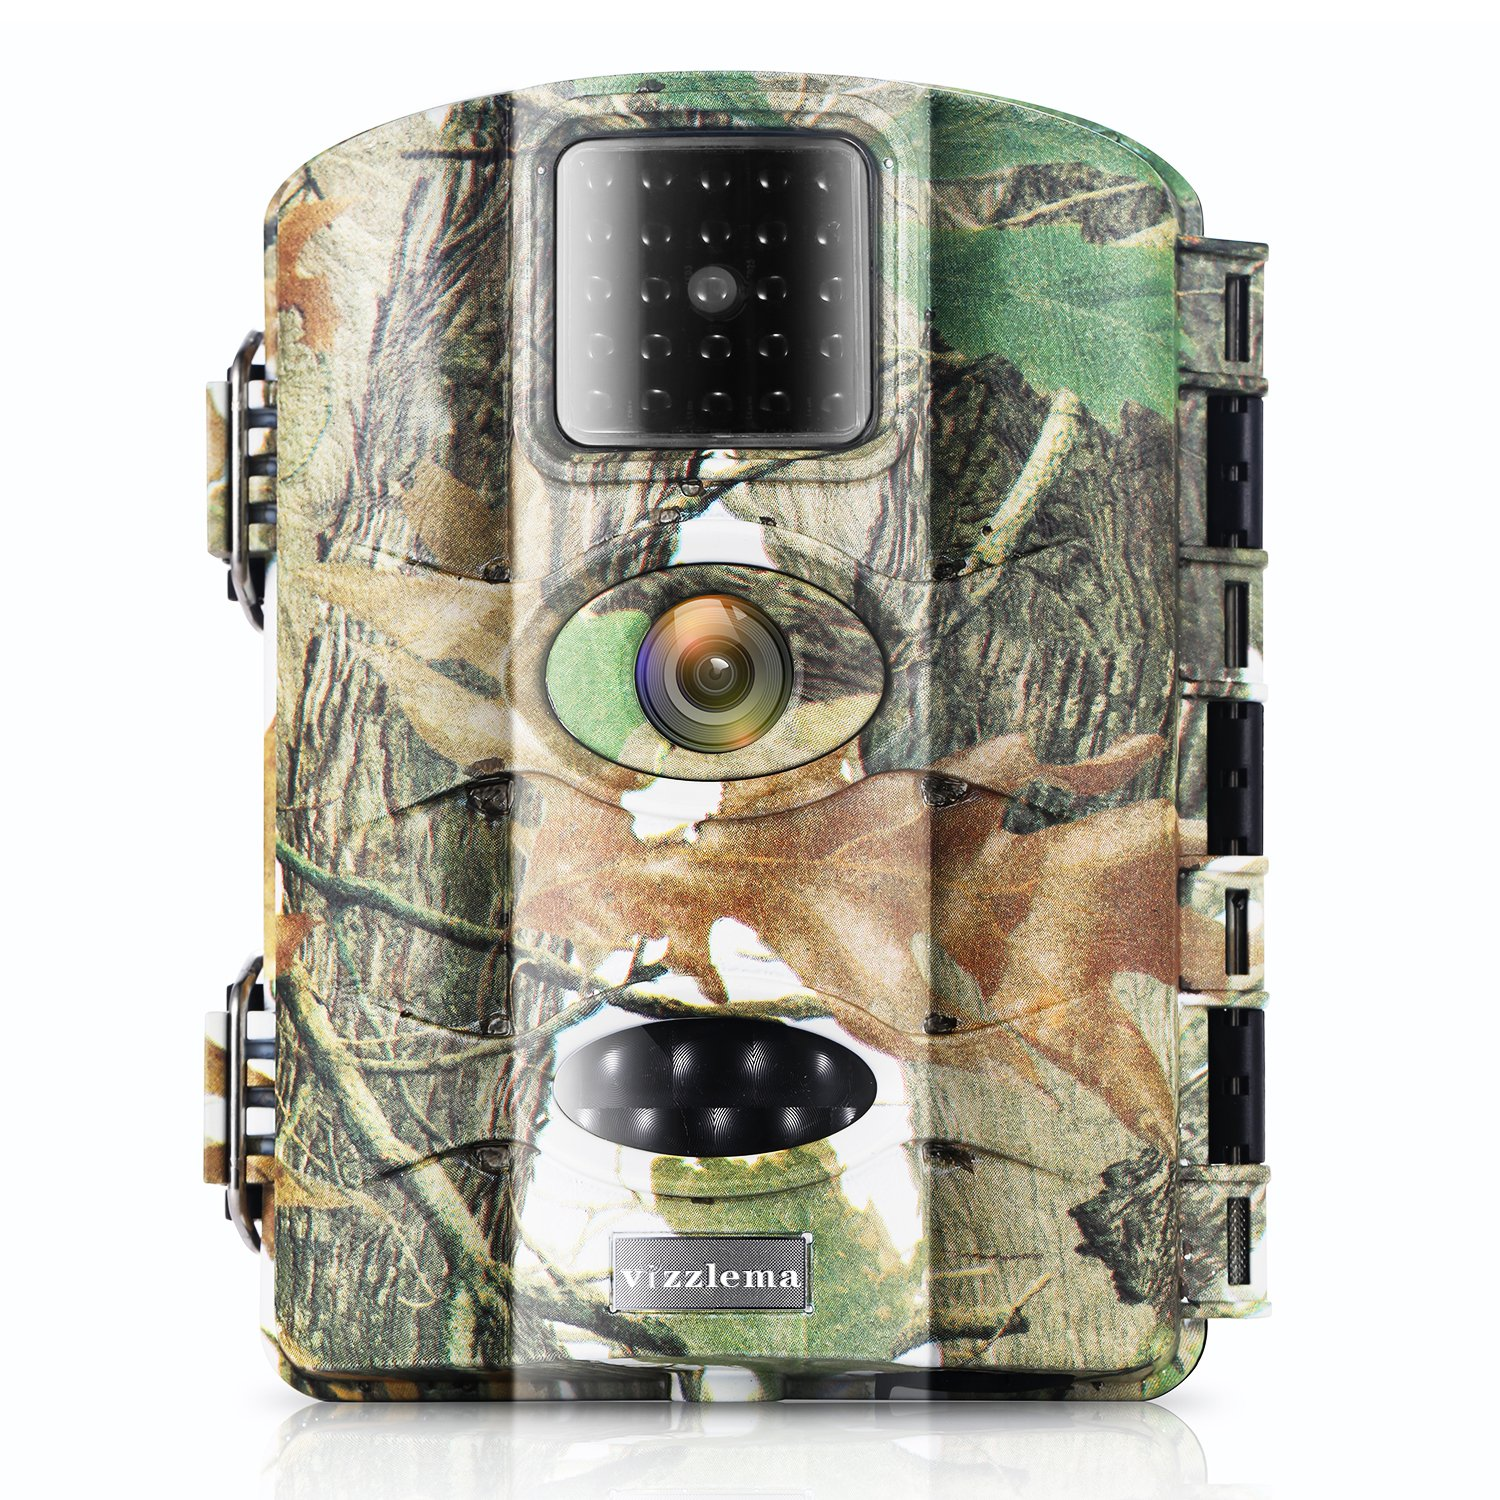 Vizzlema Trail Camera-12MP Wildlife Hunting amera 65ft Infrare Game Camera Motion Activated 65ft Long Range No Glow Infrared Night Version with 2.4in LCD Screen Waterproof IP65